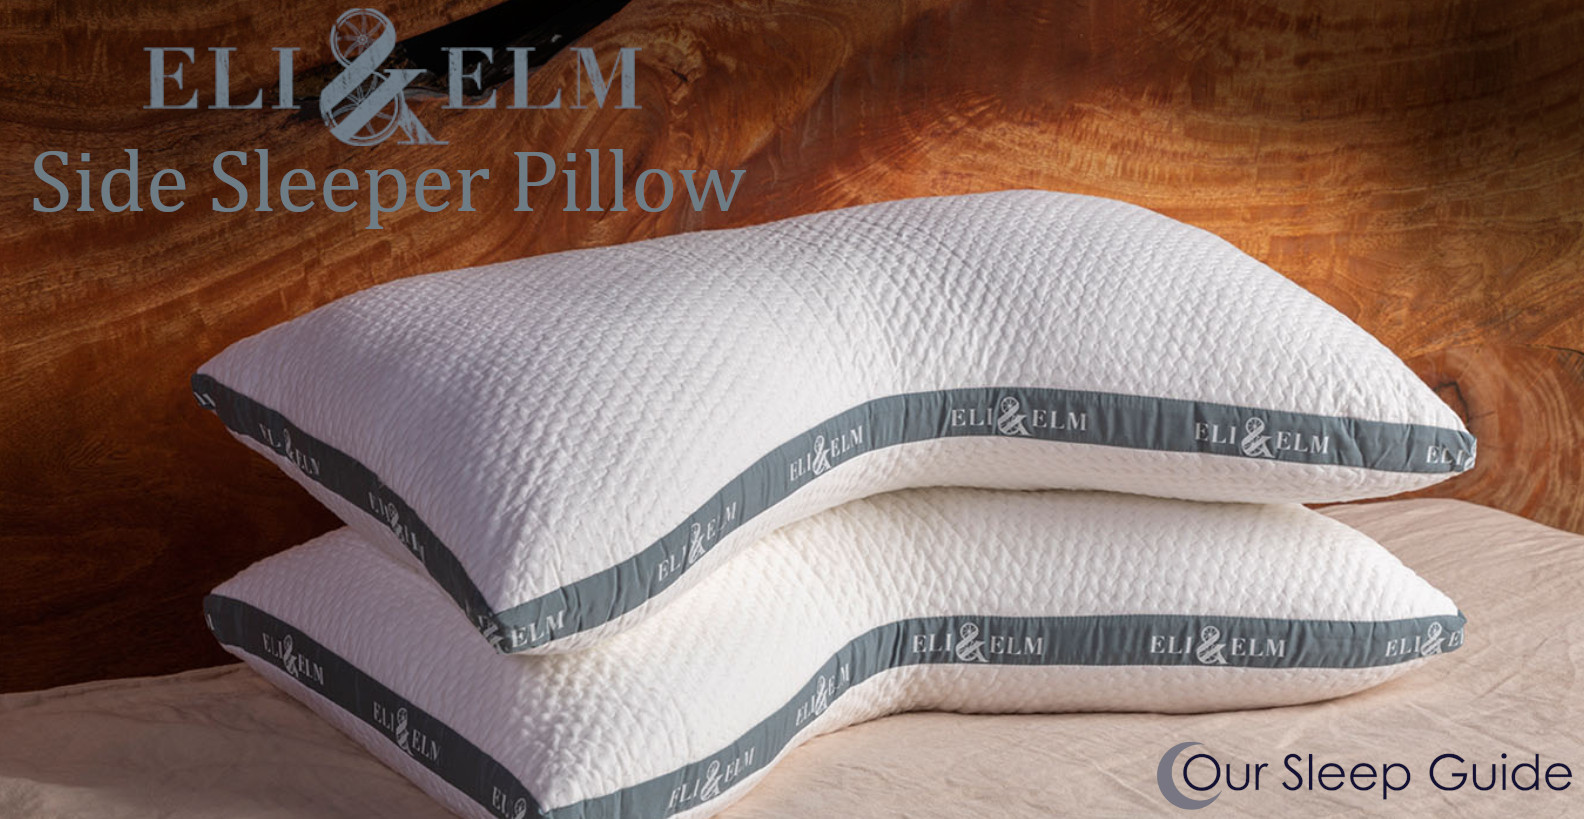 the side sleeper pillow from eli&elm review